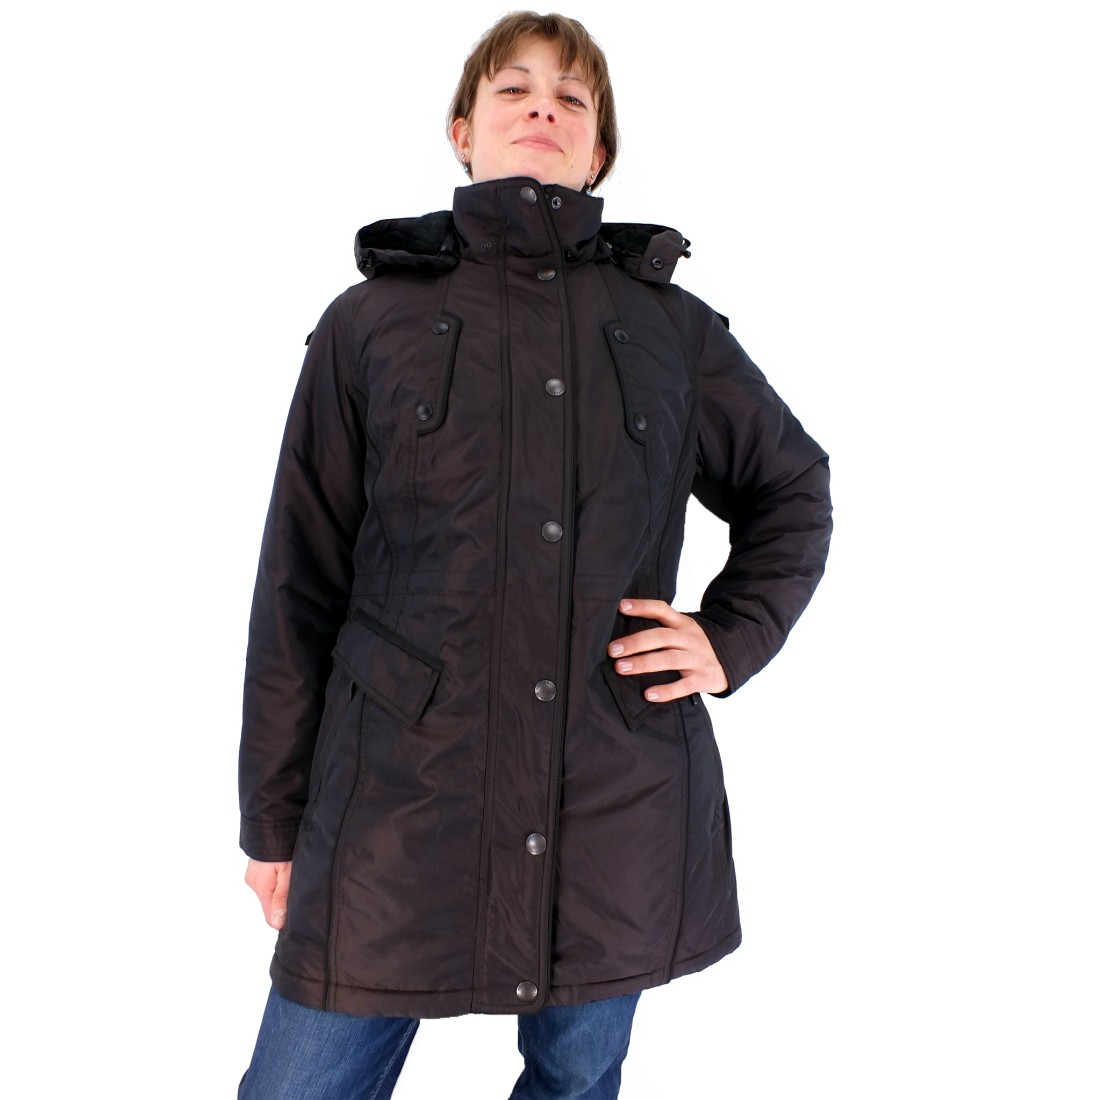 wellensteyn senses jacke winterjacke wintermantel parka. Black Bedroom Furniture Sets. Home Design Ideas